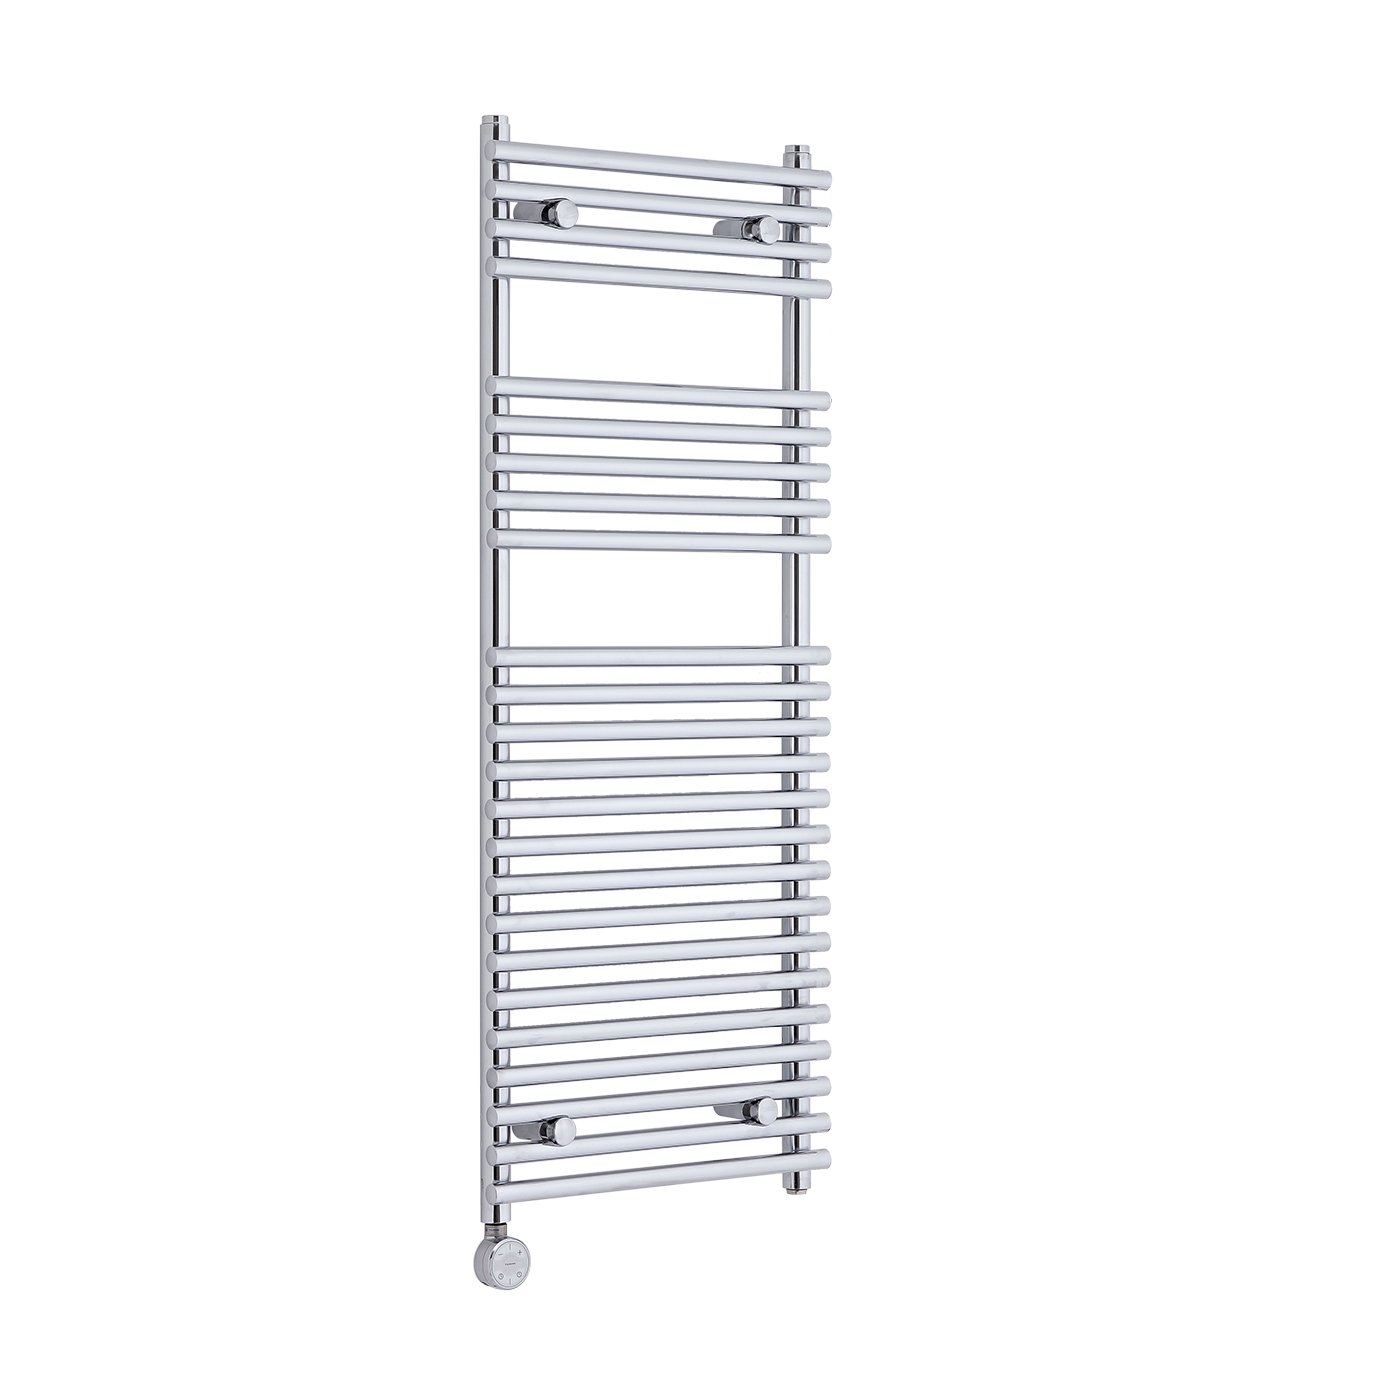 KUDOX Chrome 1150mm x 450mm Electric Flat Bar on Bar Heated Towel Rail - 383 W Watts, 1306 BTU, Mild Steel Construction, Tested to BS EN 442 Standards, ISO9001:2008 Registered Manufacturer, CE Marked